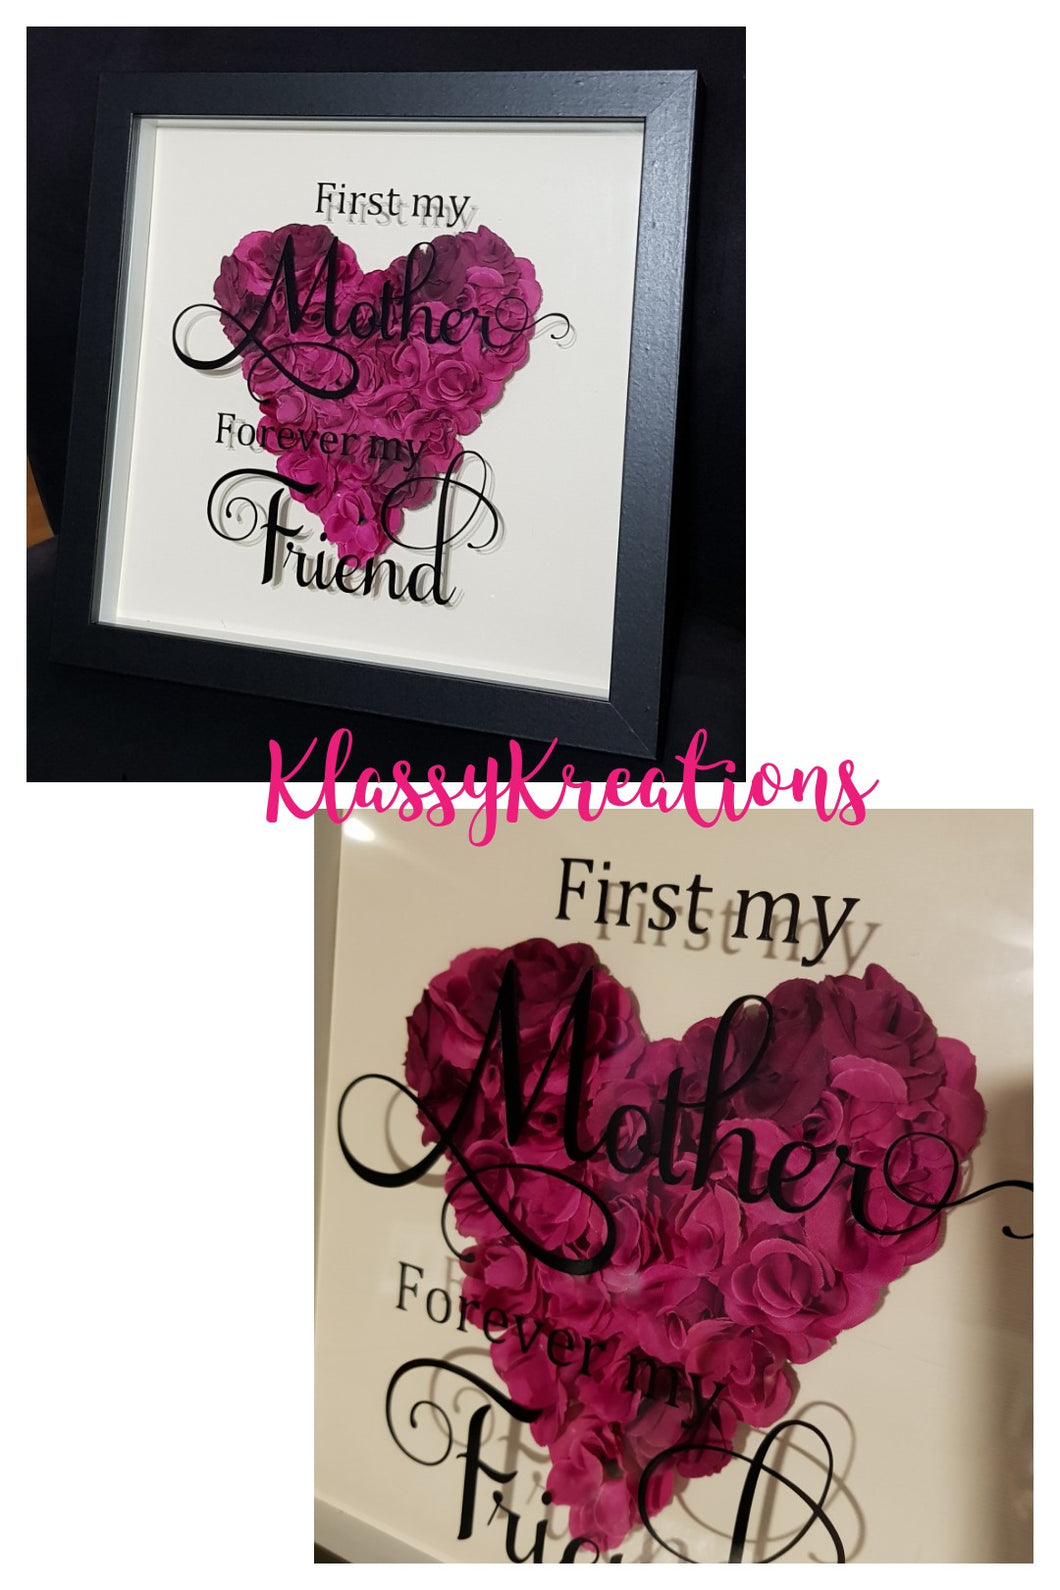 Shadow Box Frame with Flowers - First my Mother